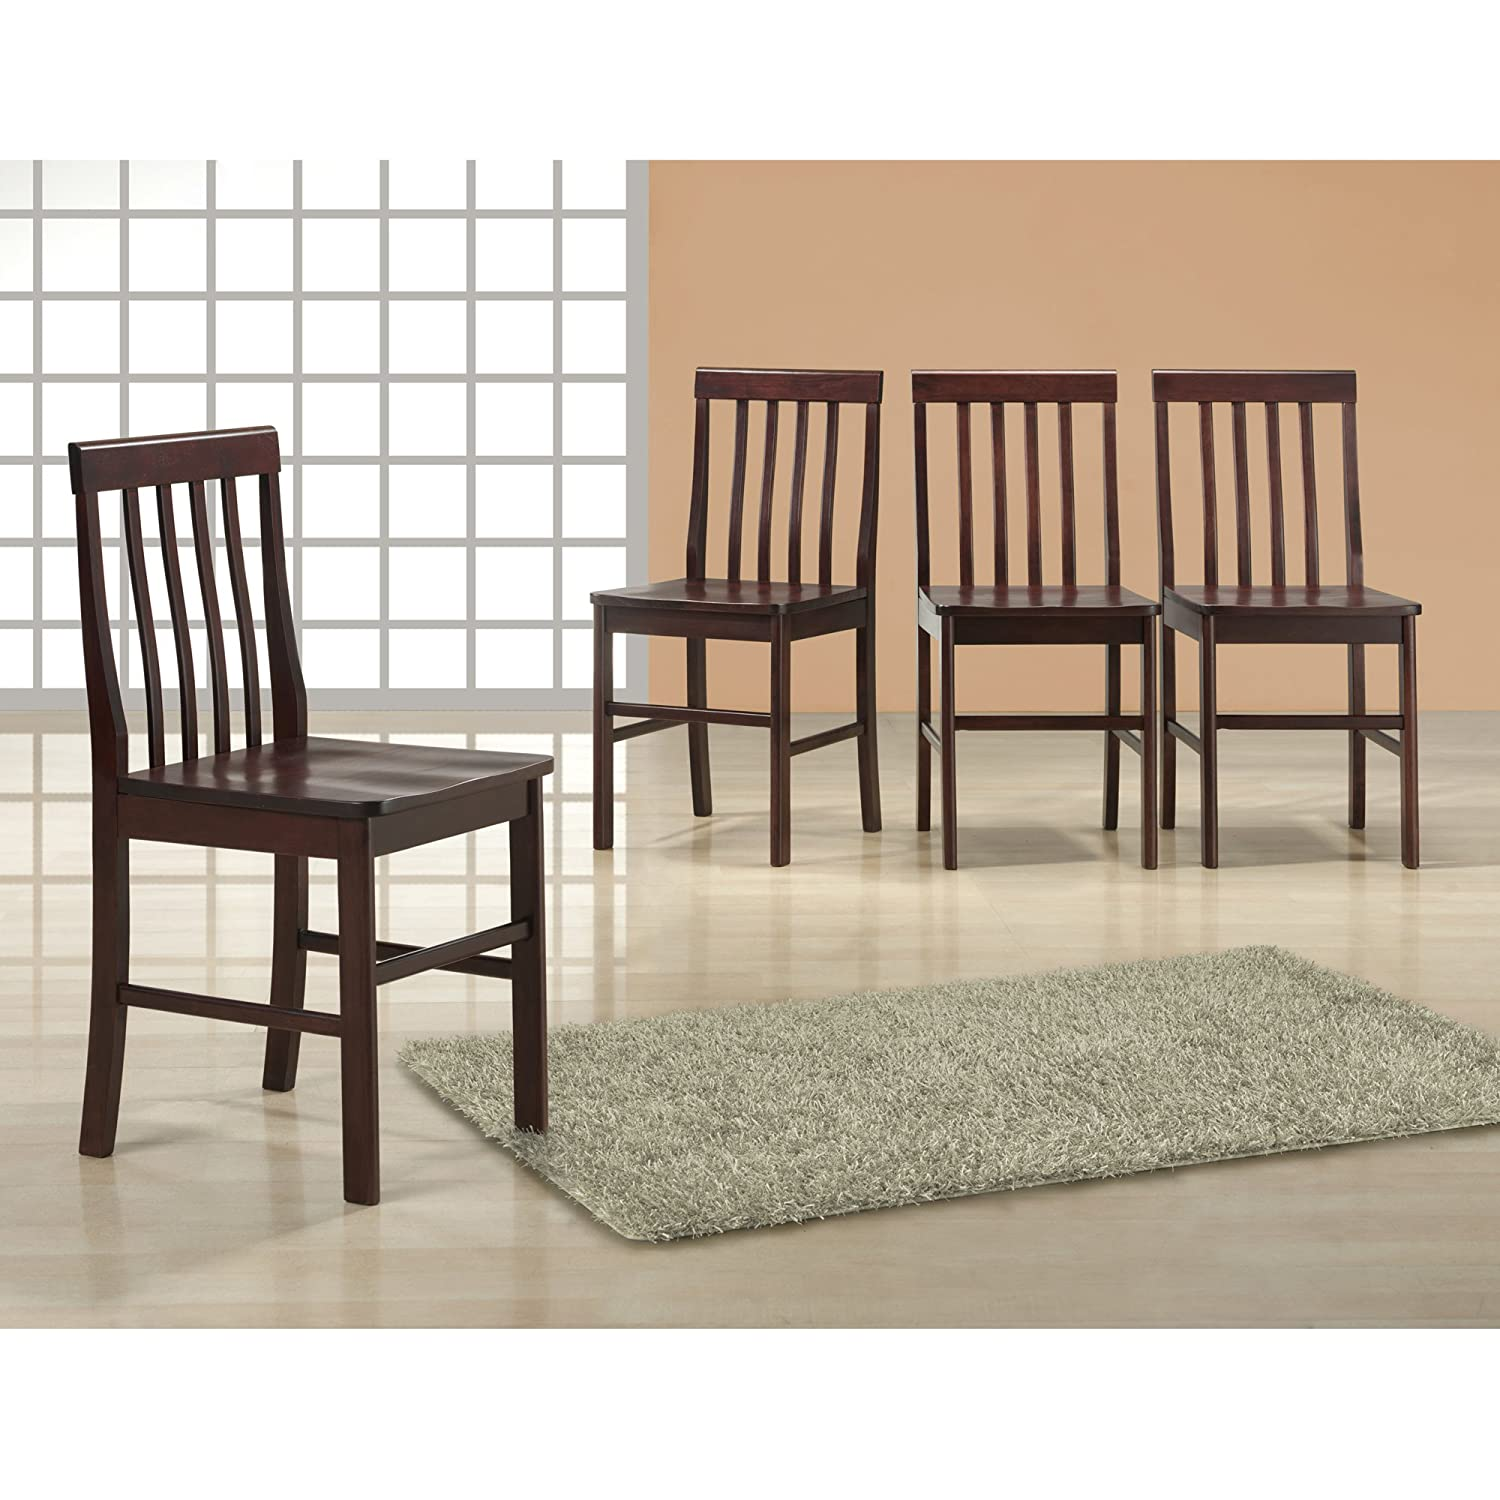 Amazon Walker Edison Espresso Wood Dining Chairs Set of 4